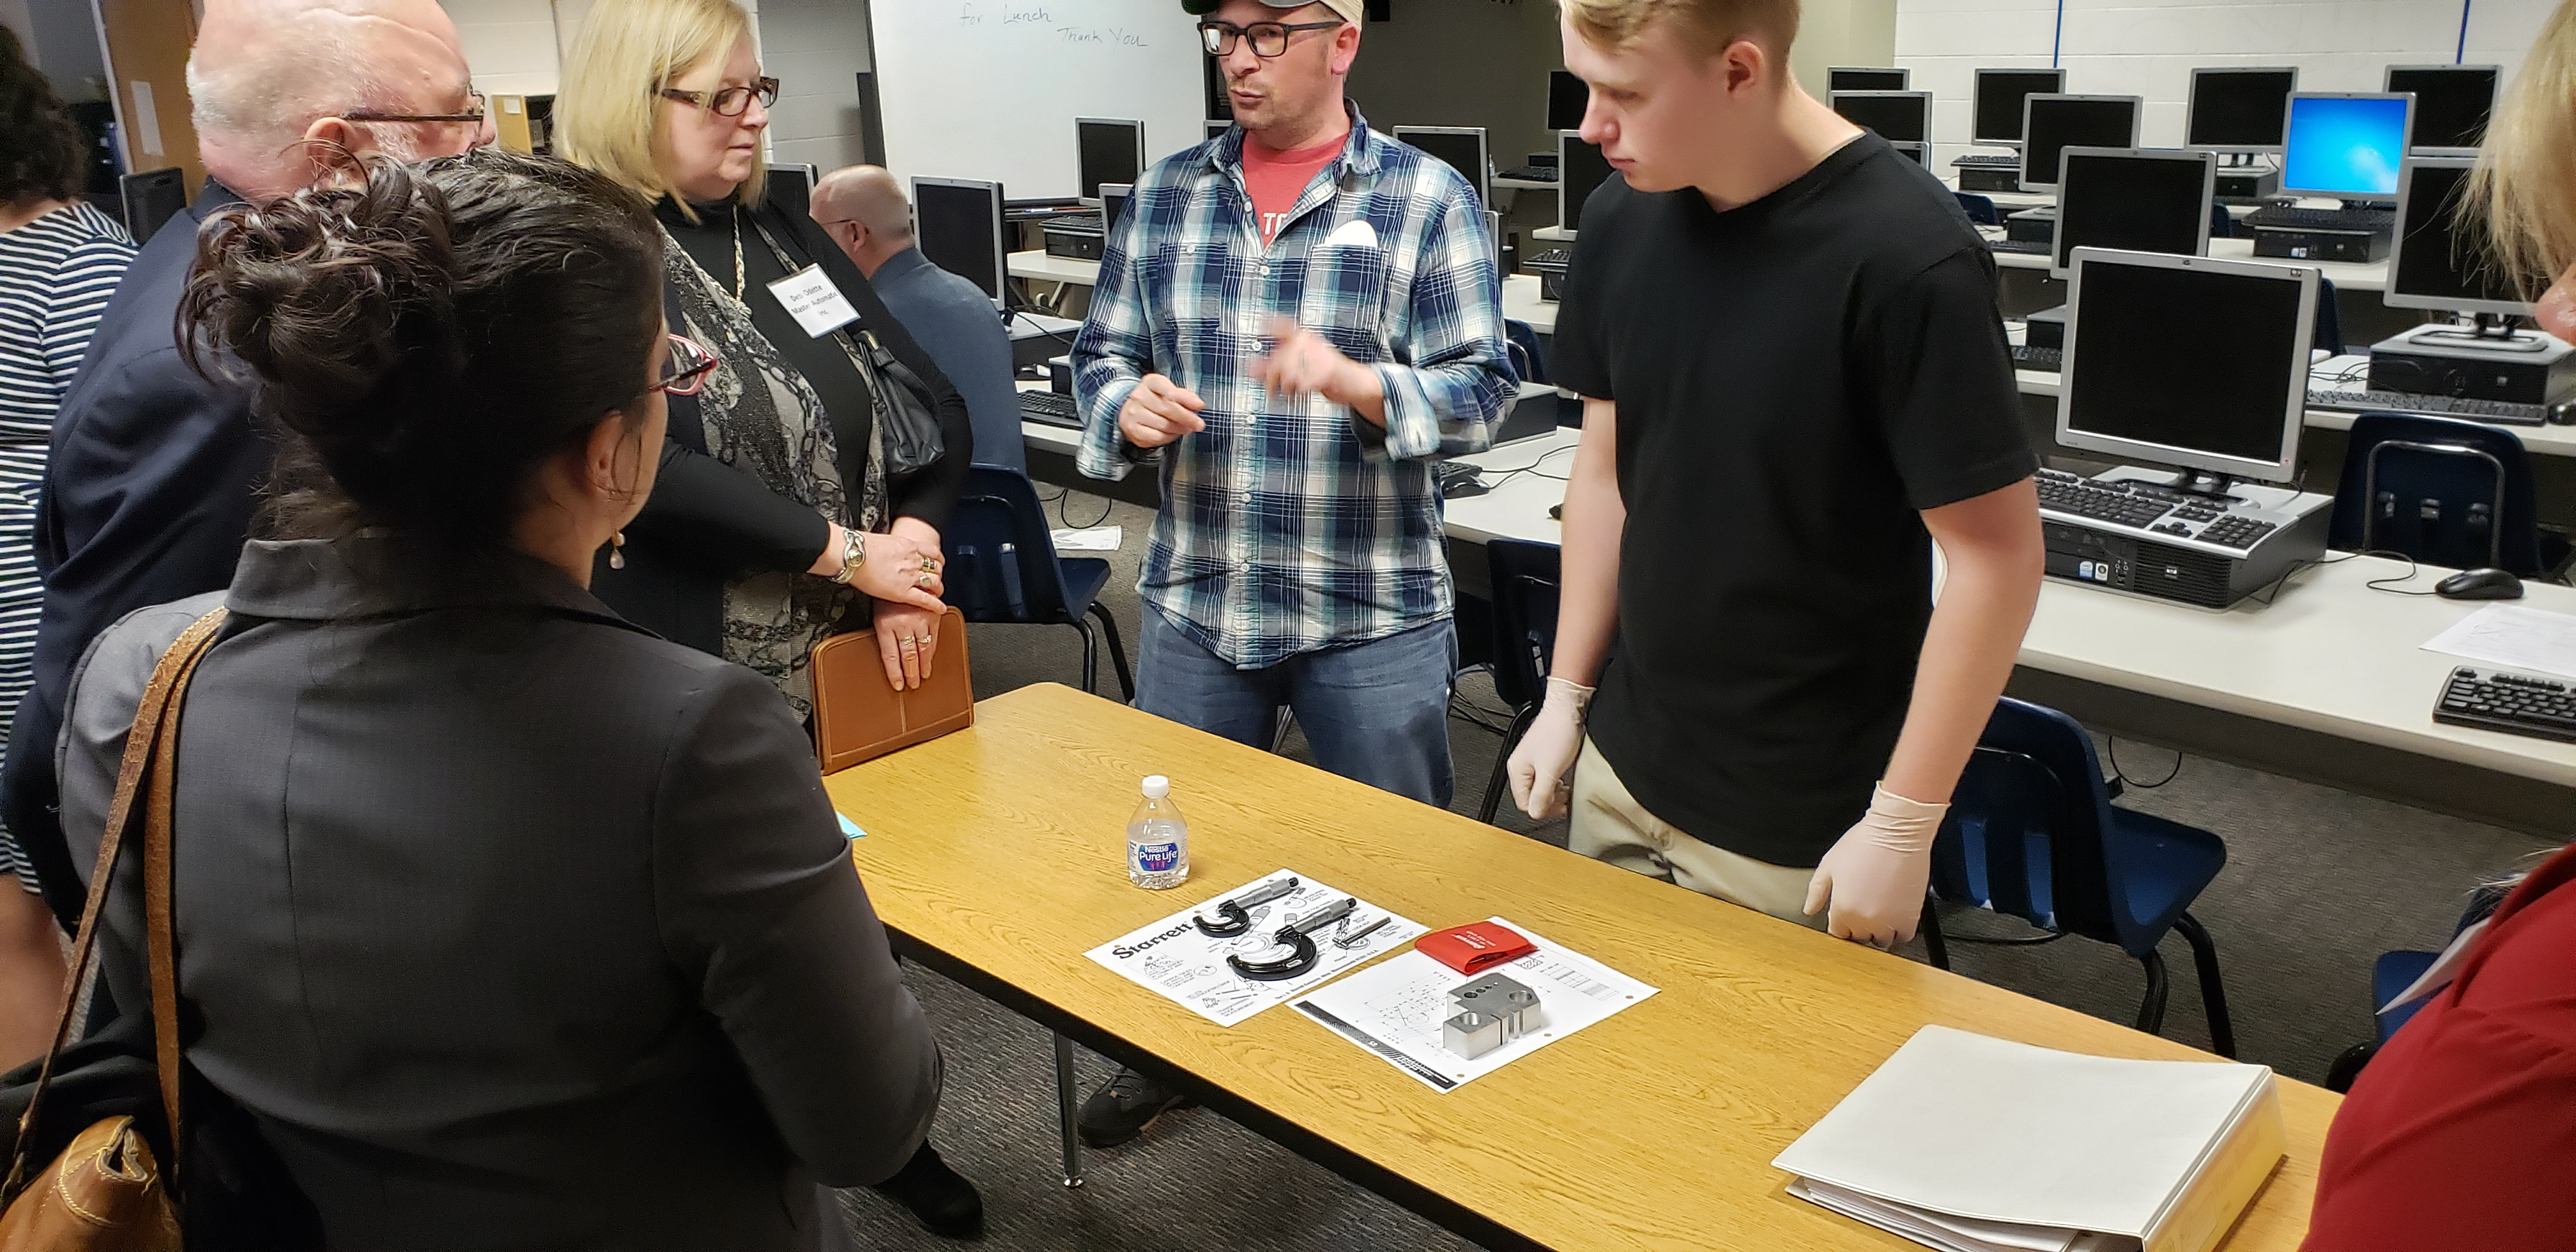 2019 SME PRIME Launch - Starkweather Academy - Starrett PMI Demonstration.jpg